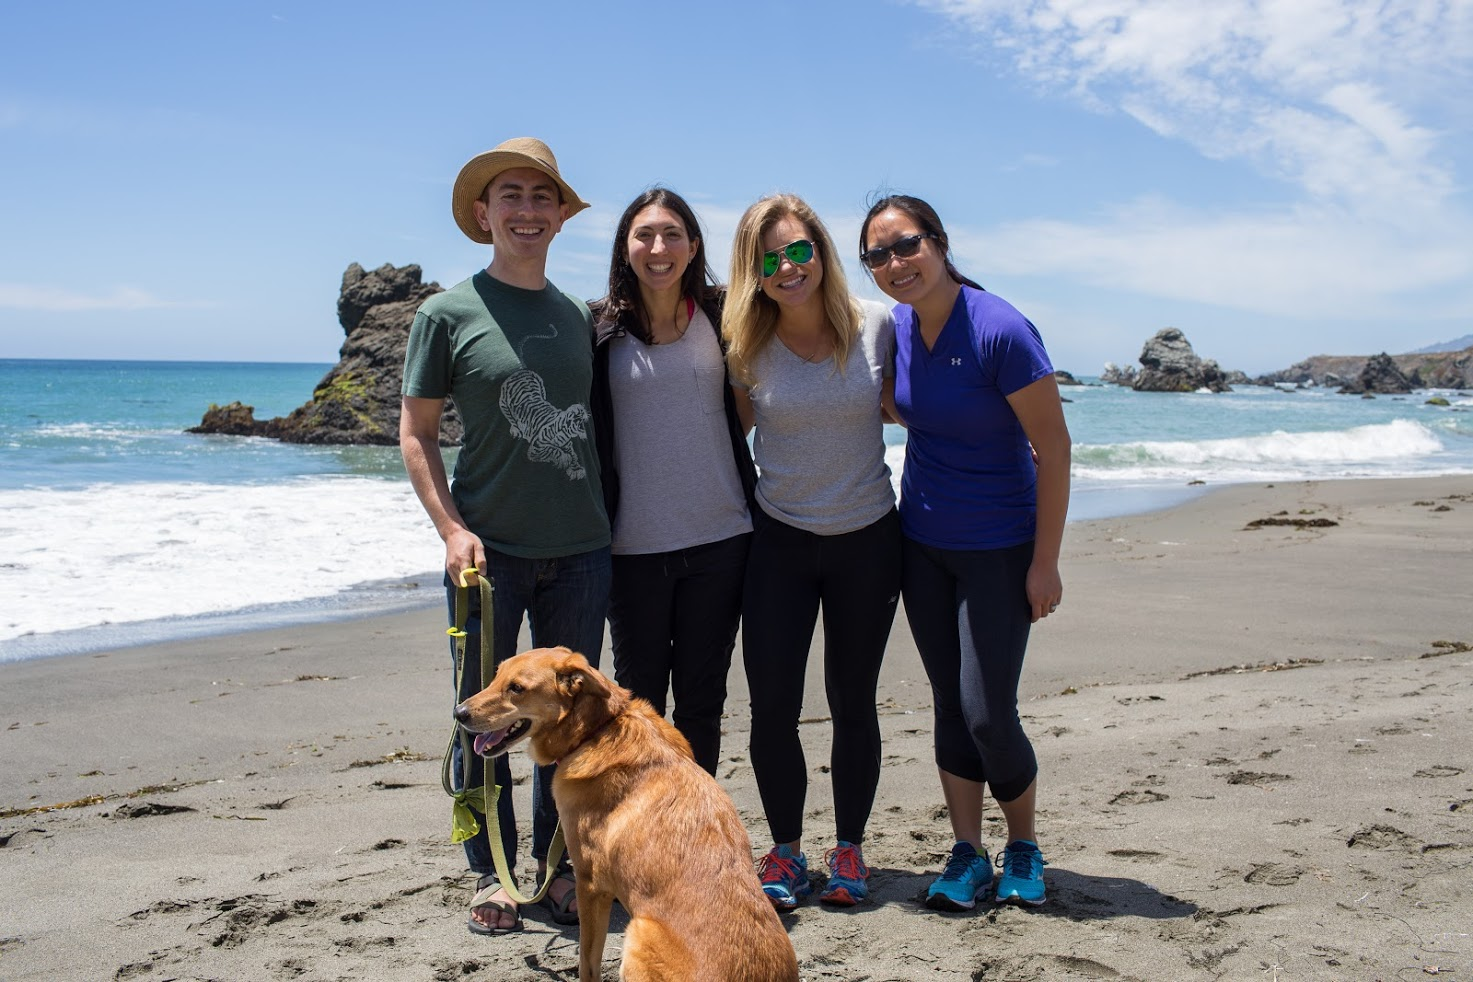 Beach time for the Binti team, including Stewie (office pup and head engineer).